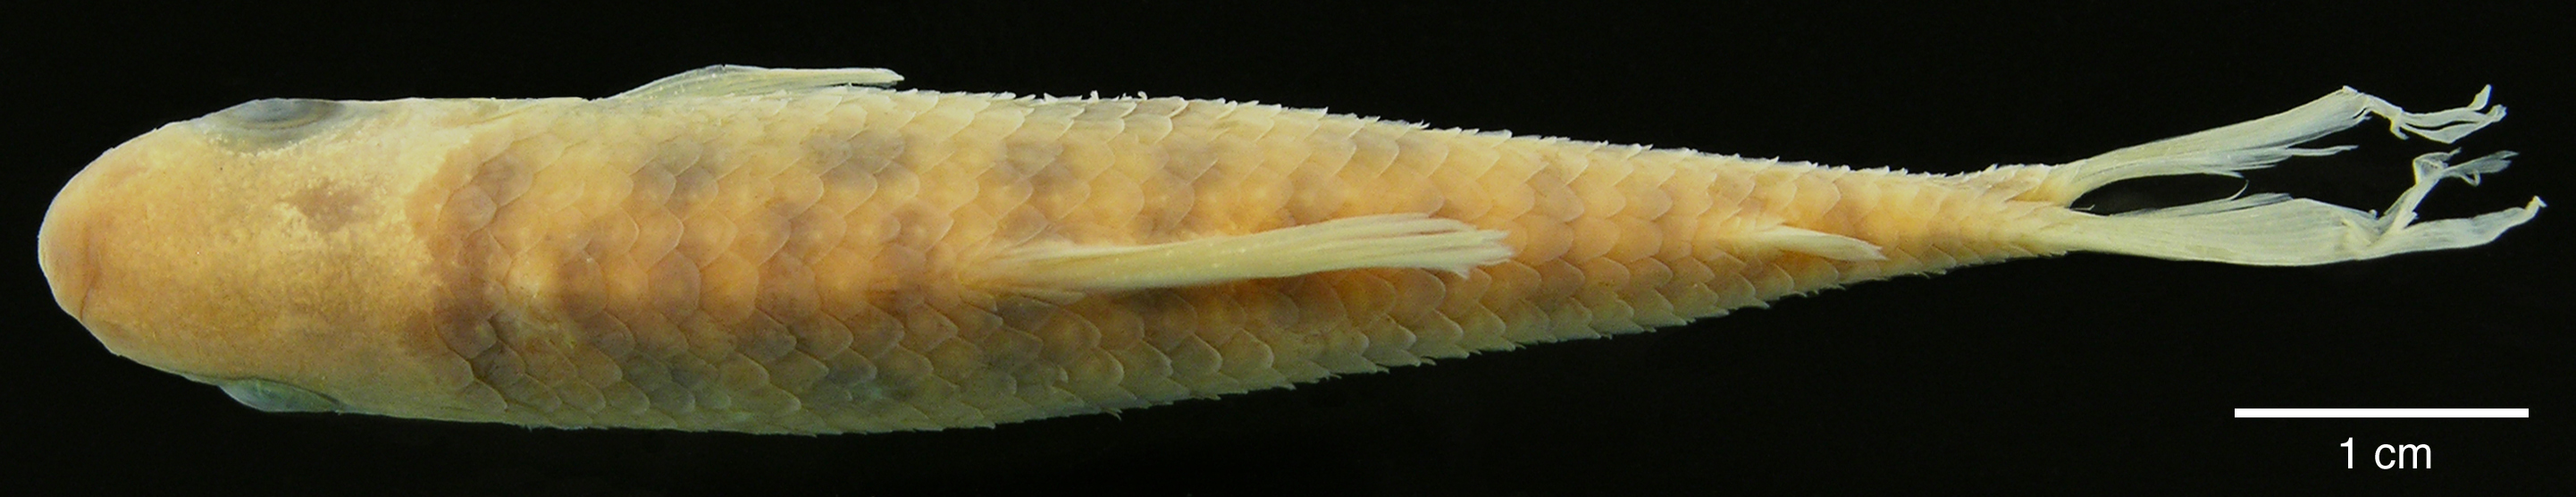 Paratype of <em>Leporinus boehlkei</em>, IAvH-P-10562_Dorsal, 70.2 mm SL (scale bar = 1 cm). Photograph by M. H. Sabaj Pérez